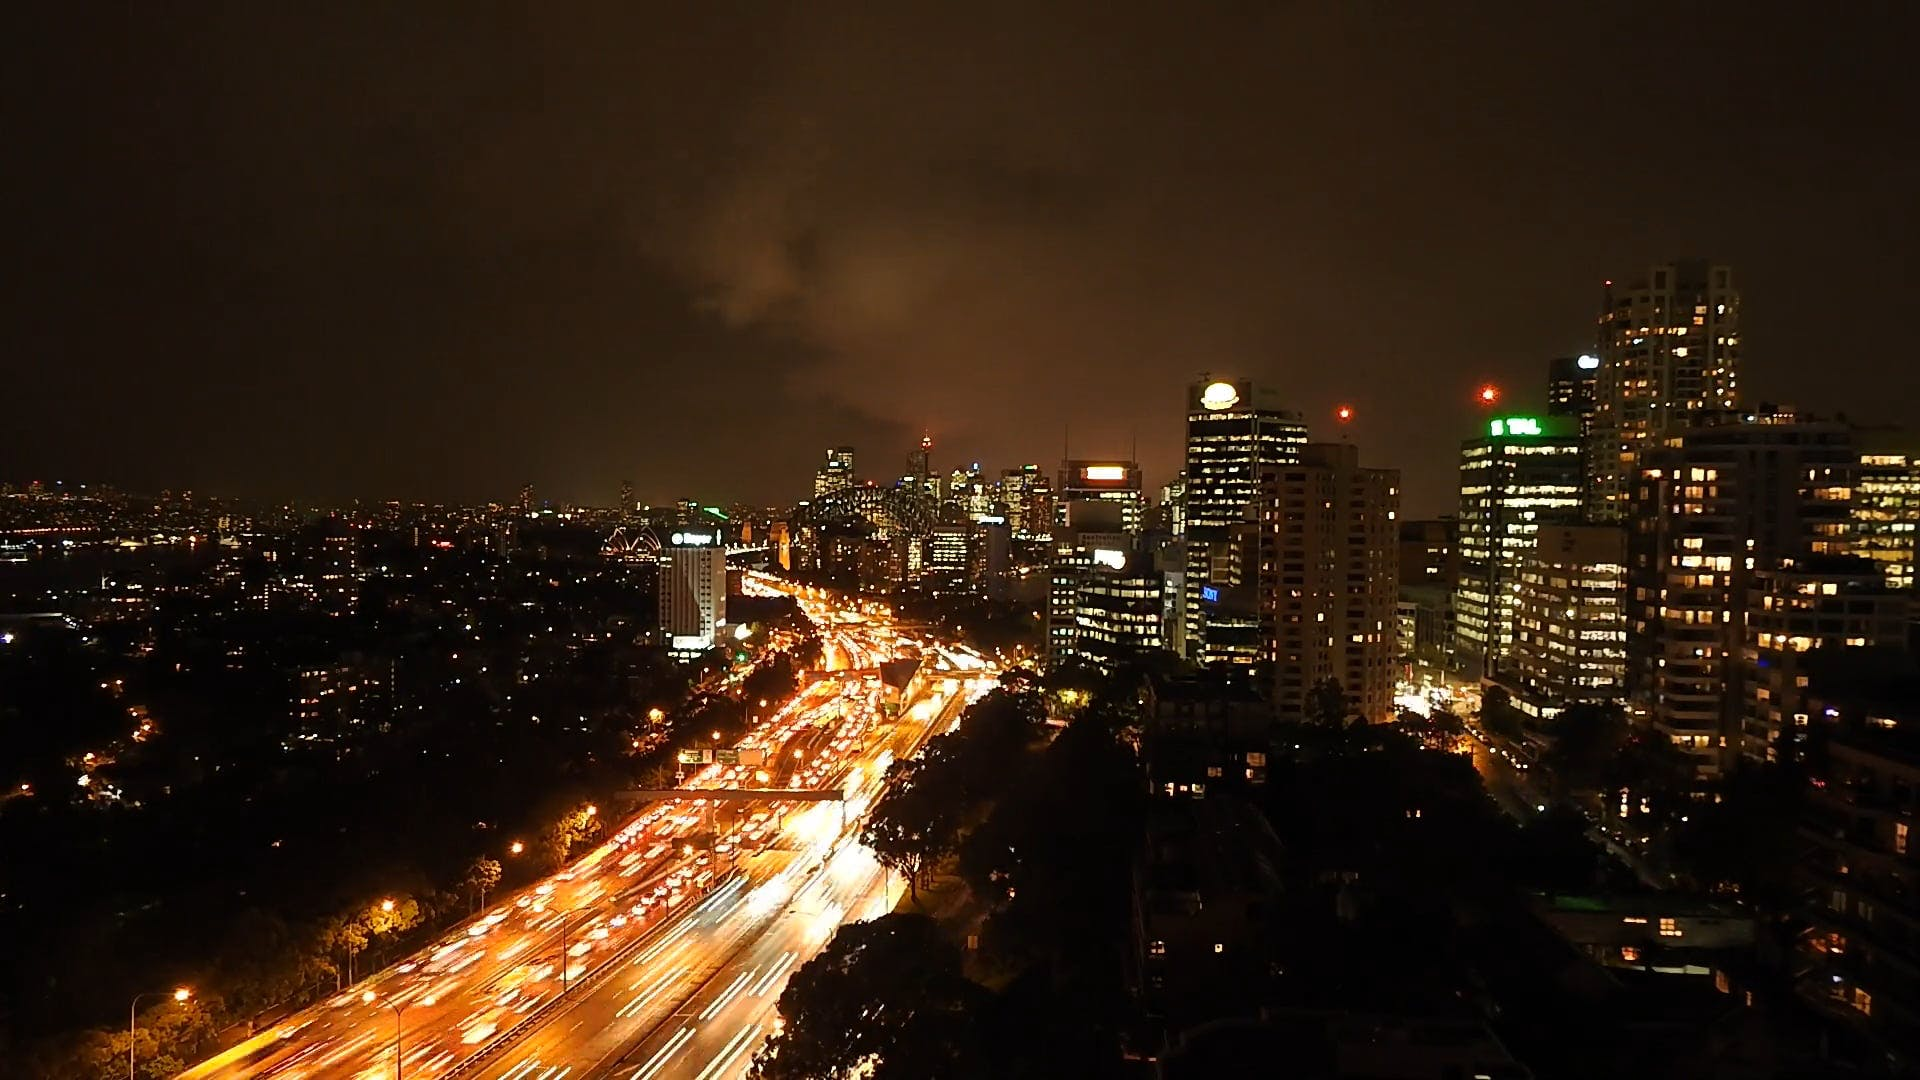 View Of City In Timelapse Mode